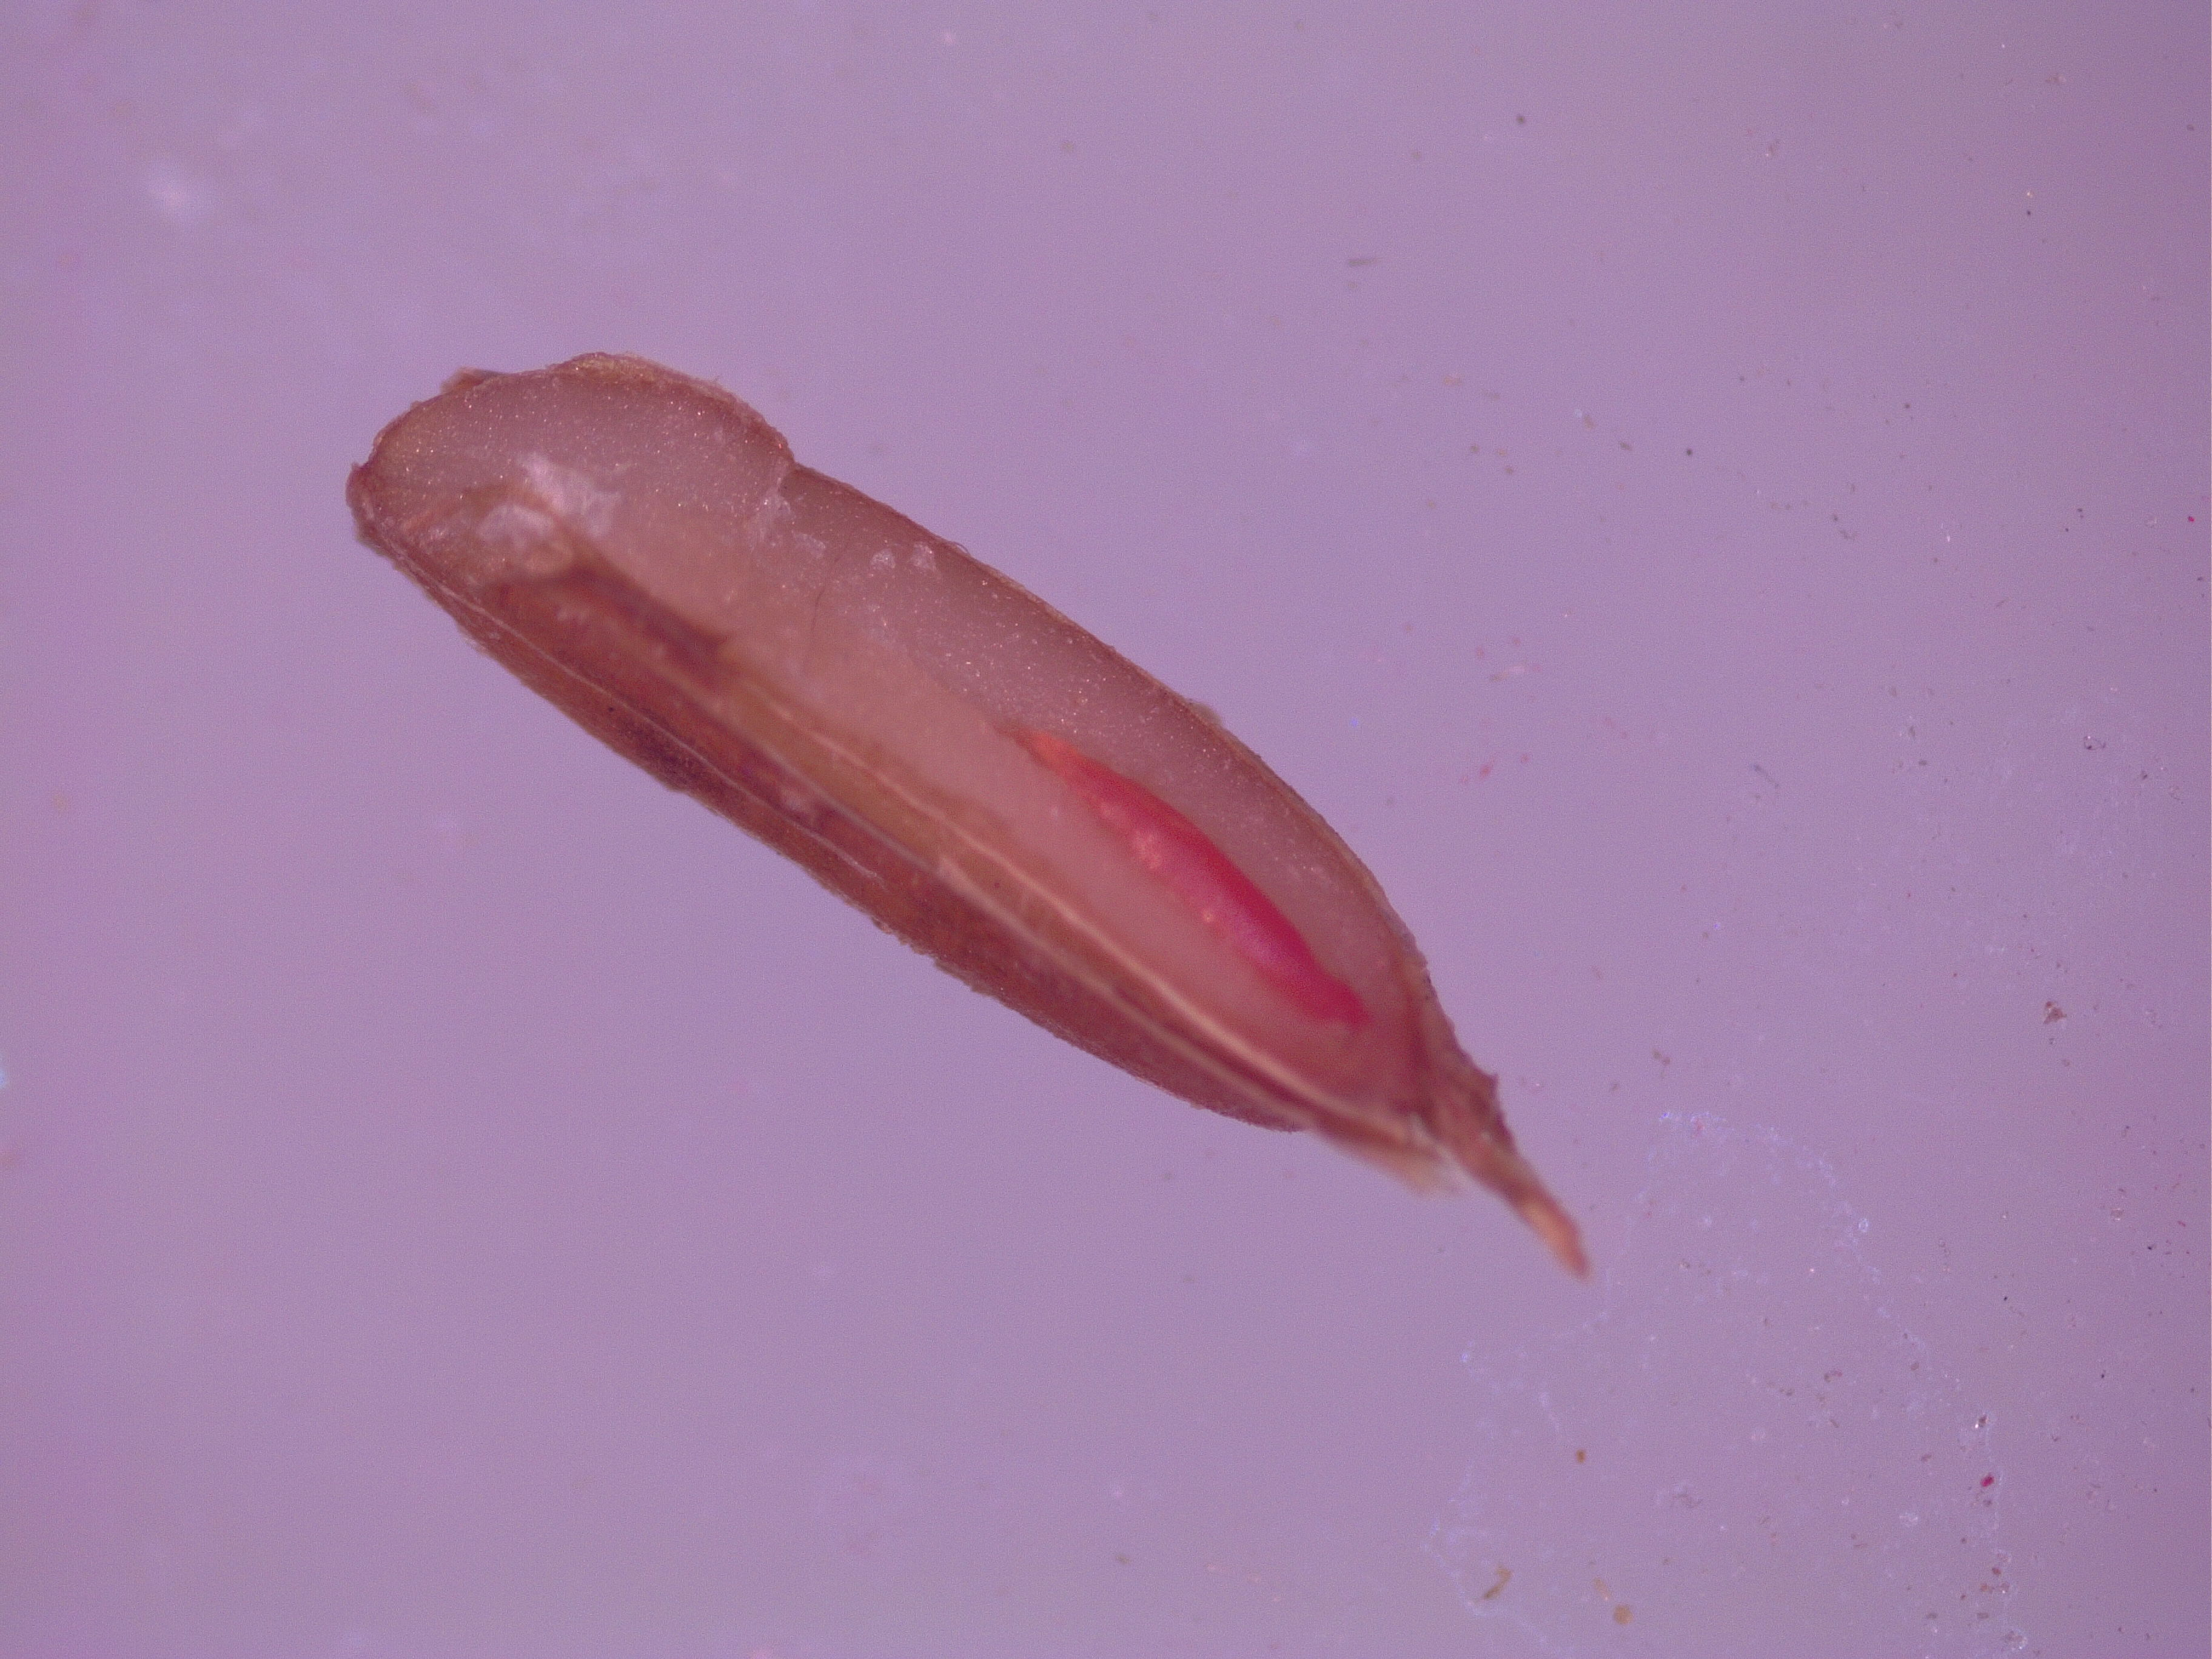 Carrot showing staining from Tetrazolium testing